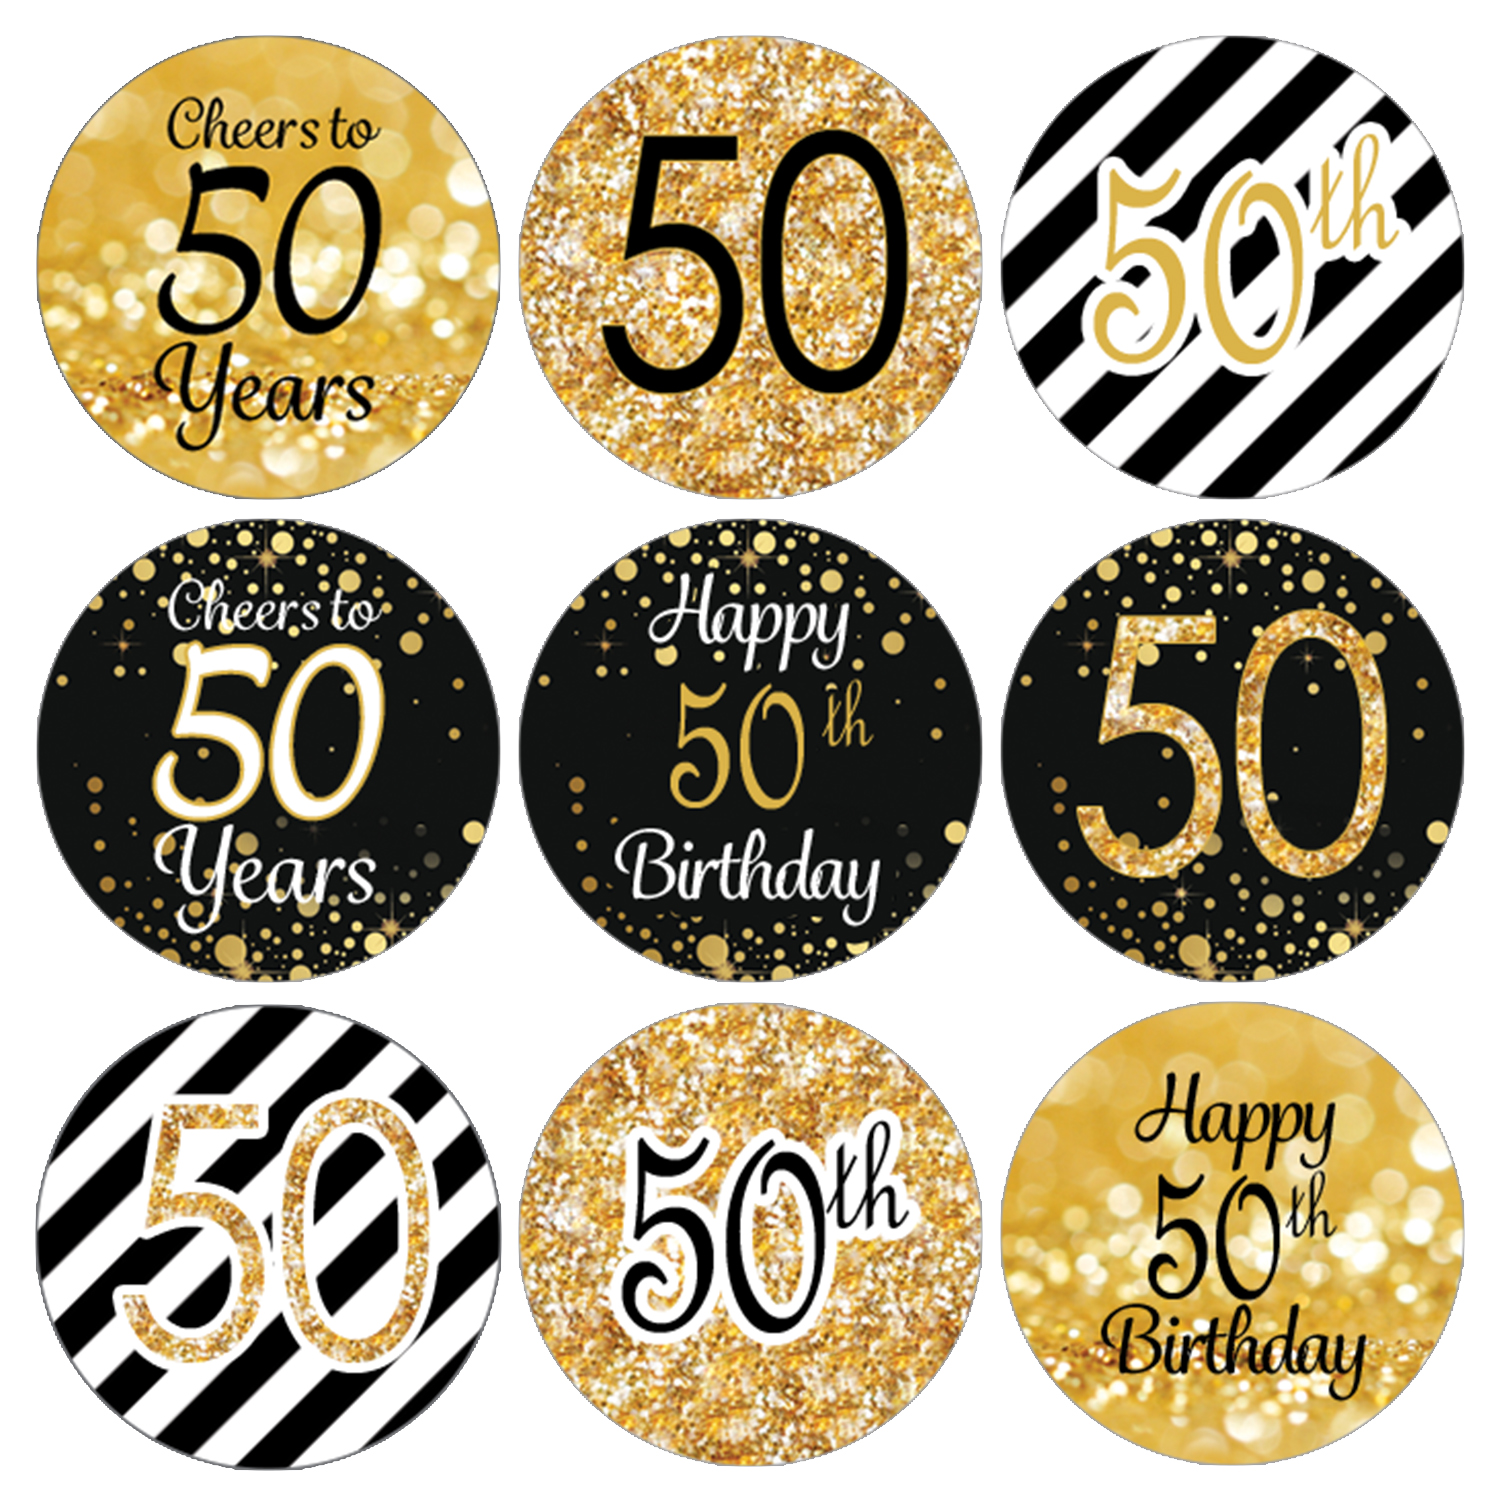 50th Birthday Party Favor Stickers | 216 Labels | Black and Gold Decoration Supplies